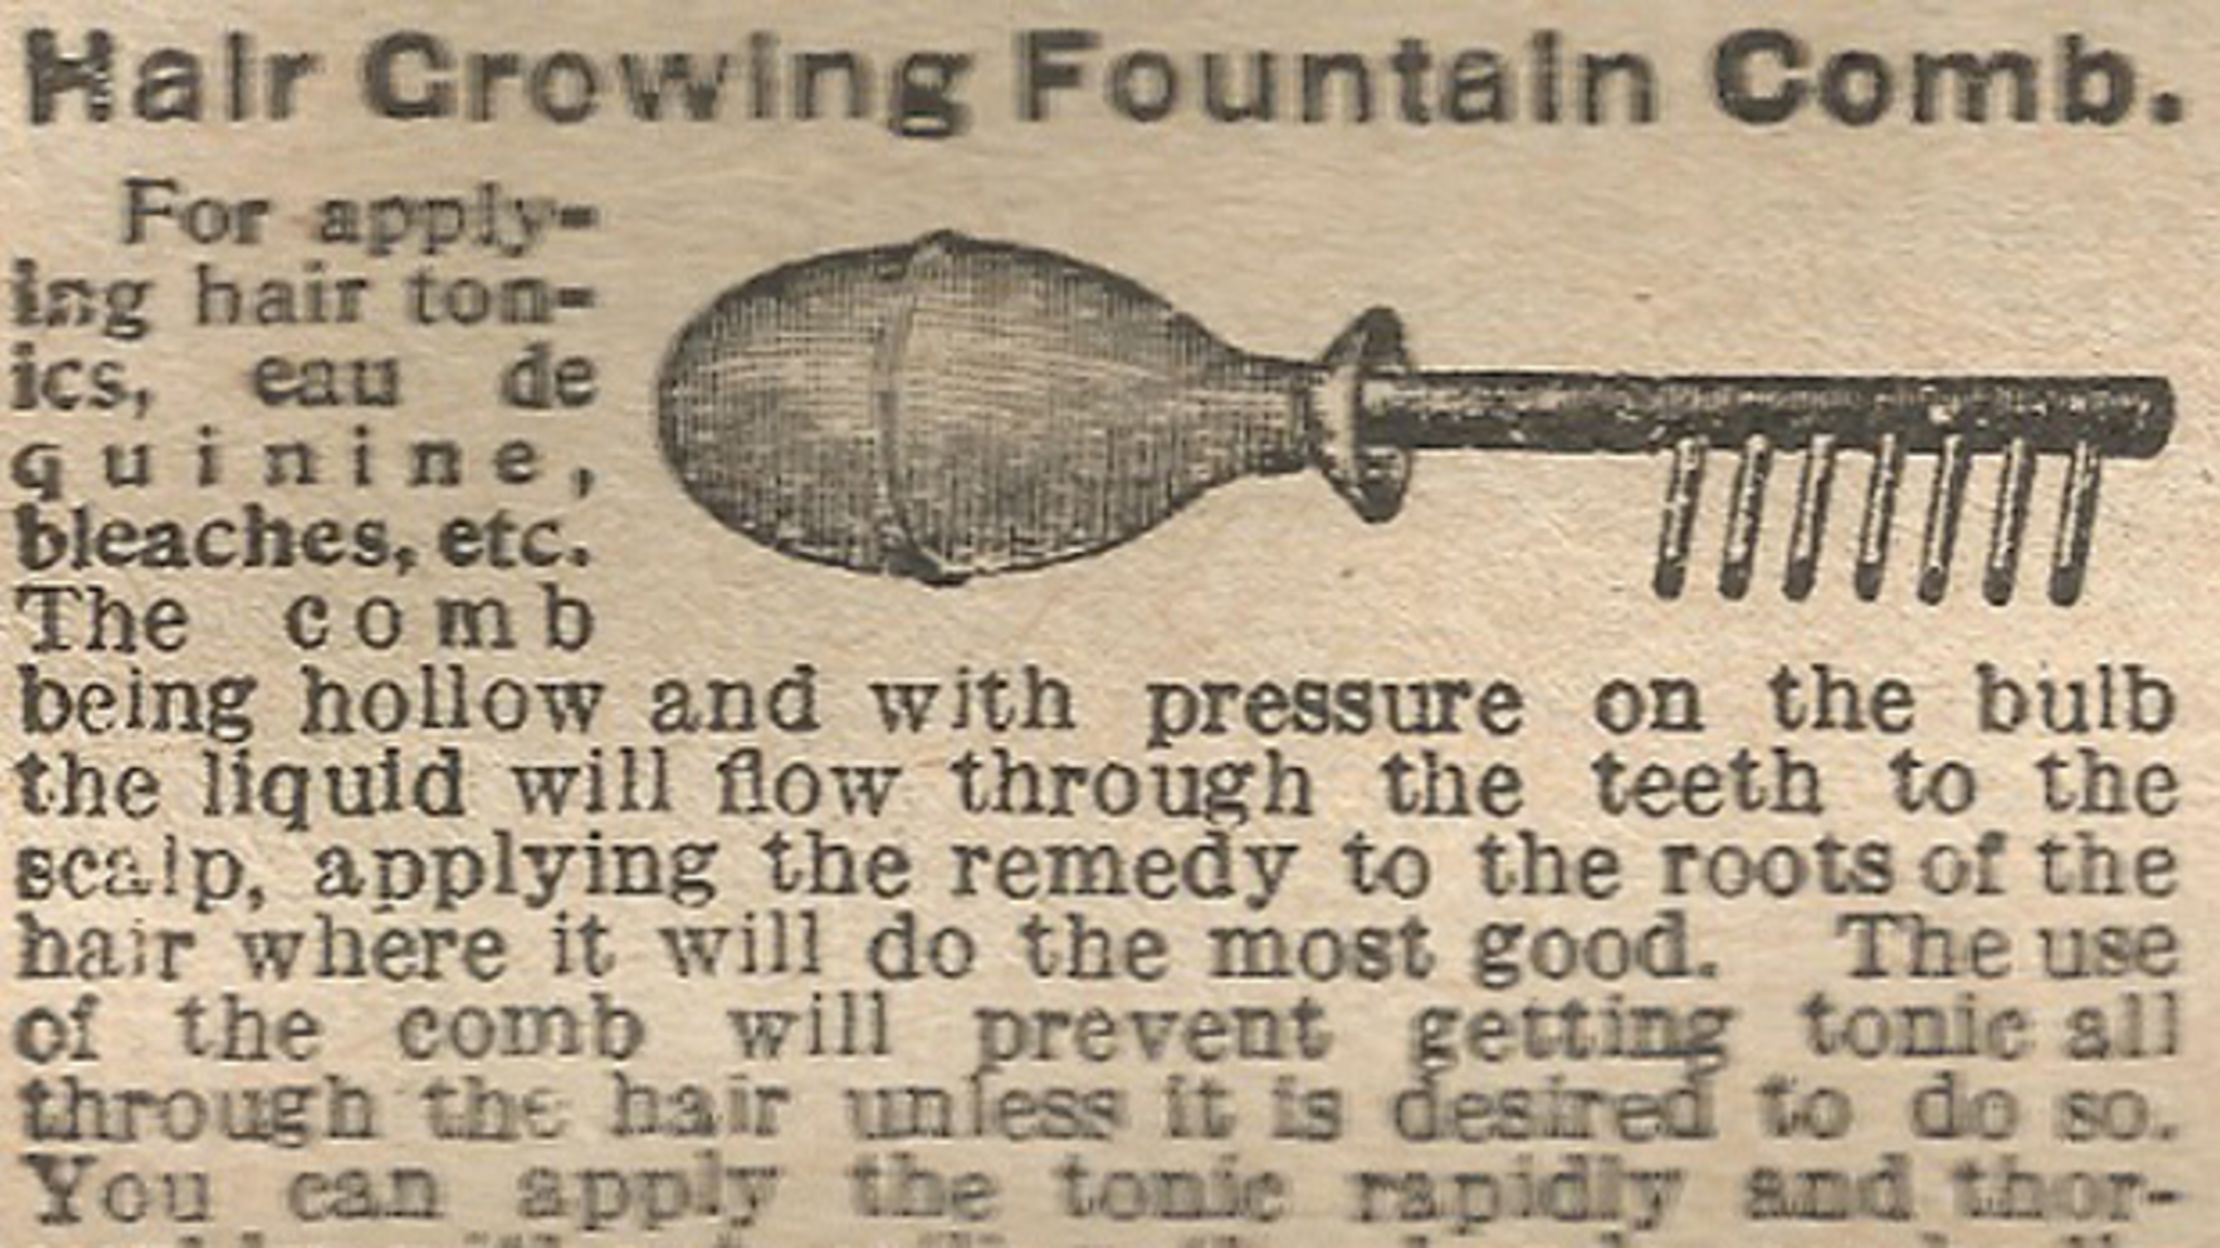 60f9b7dfb18d0 11 Female Health Products from the 1908 Sears Catalog   Mental Floss